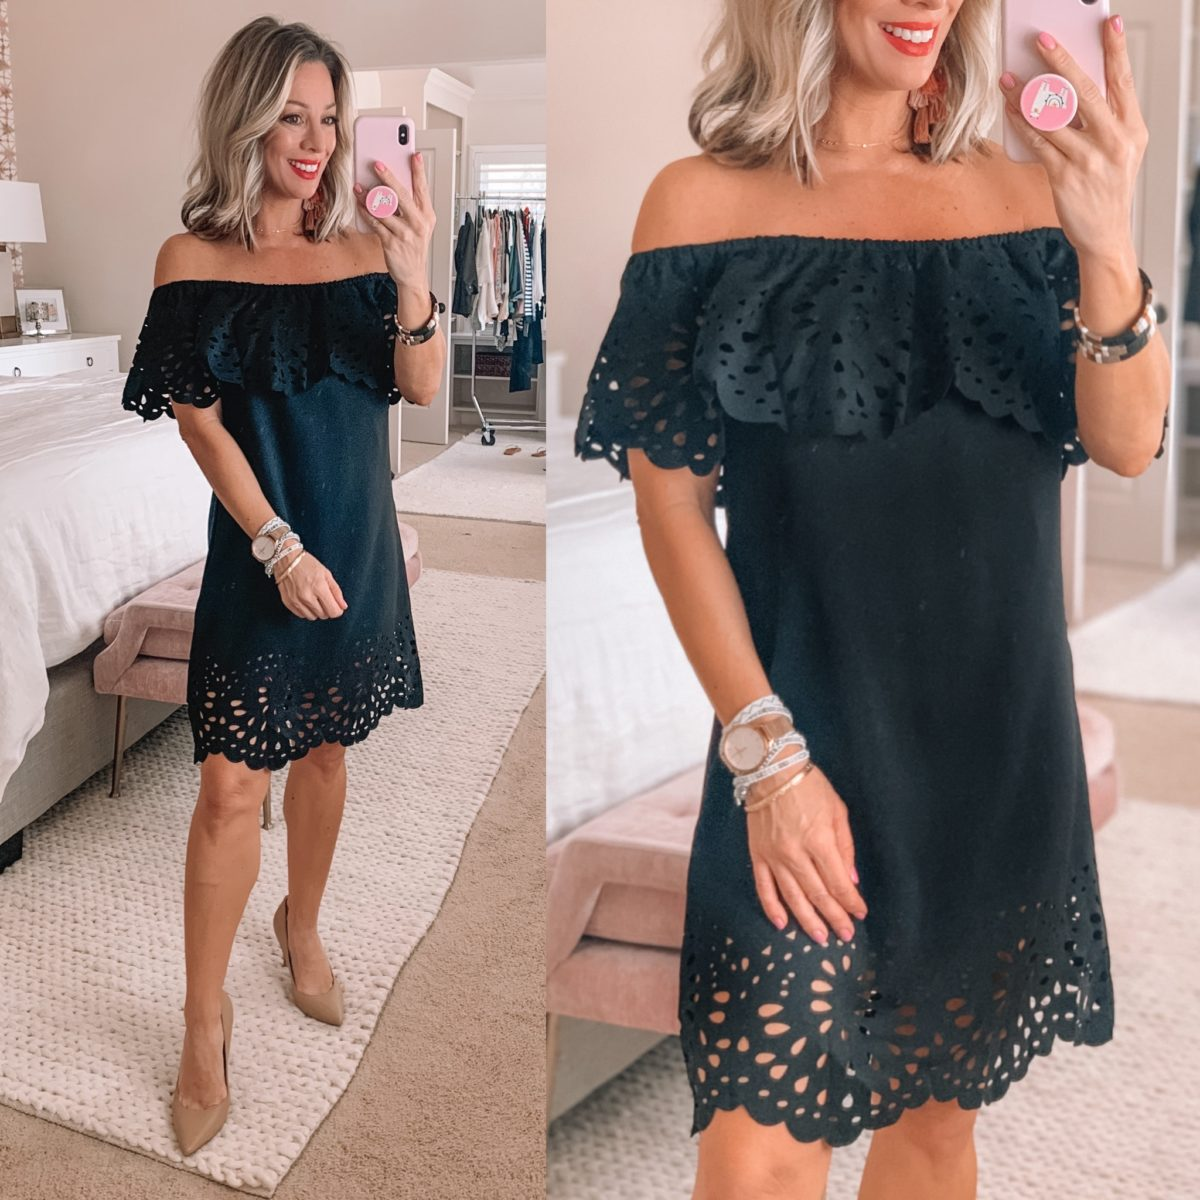 Laser cut Off Shoulder Black Mini Dress, Nude Heels